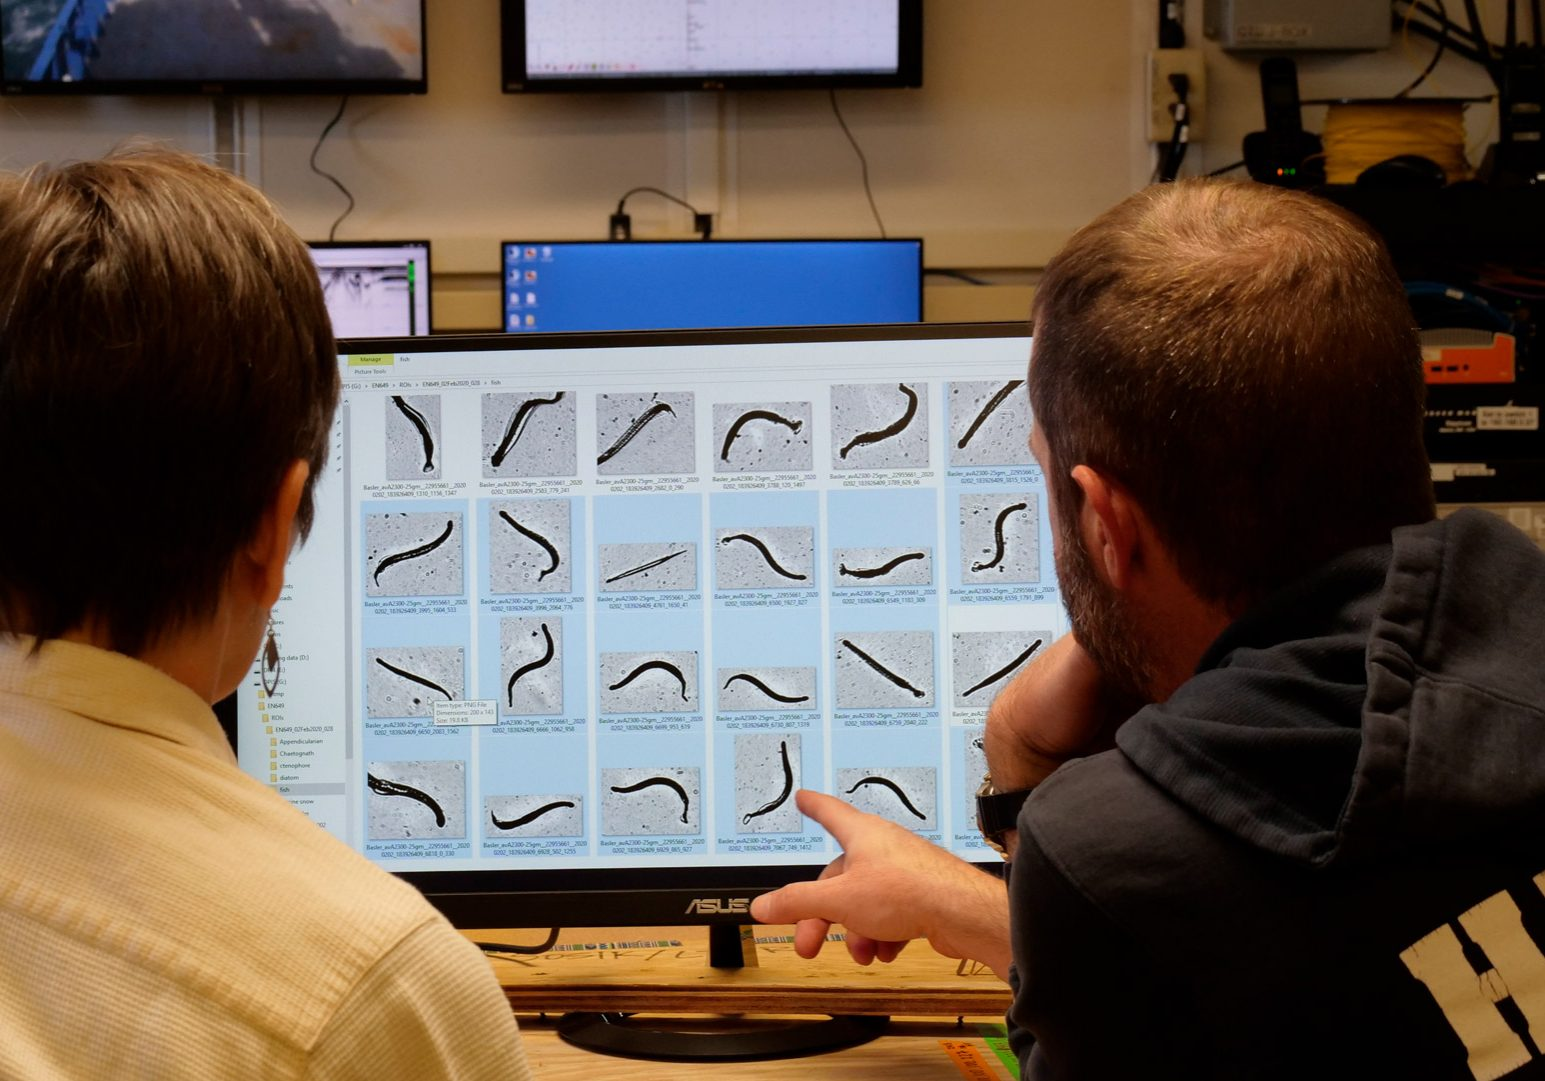 two scientists look at a computer screen with what appears to be a repeating image